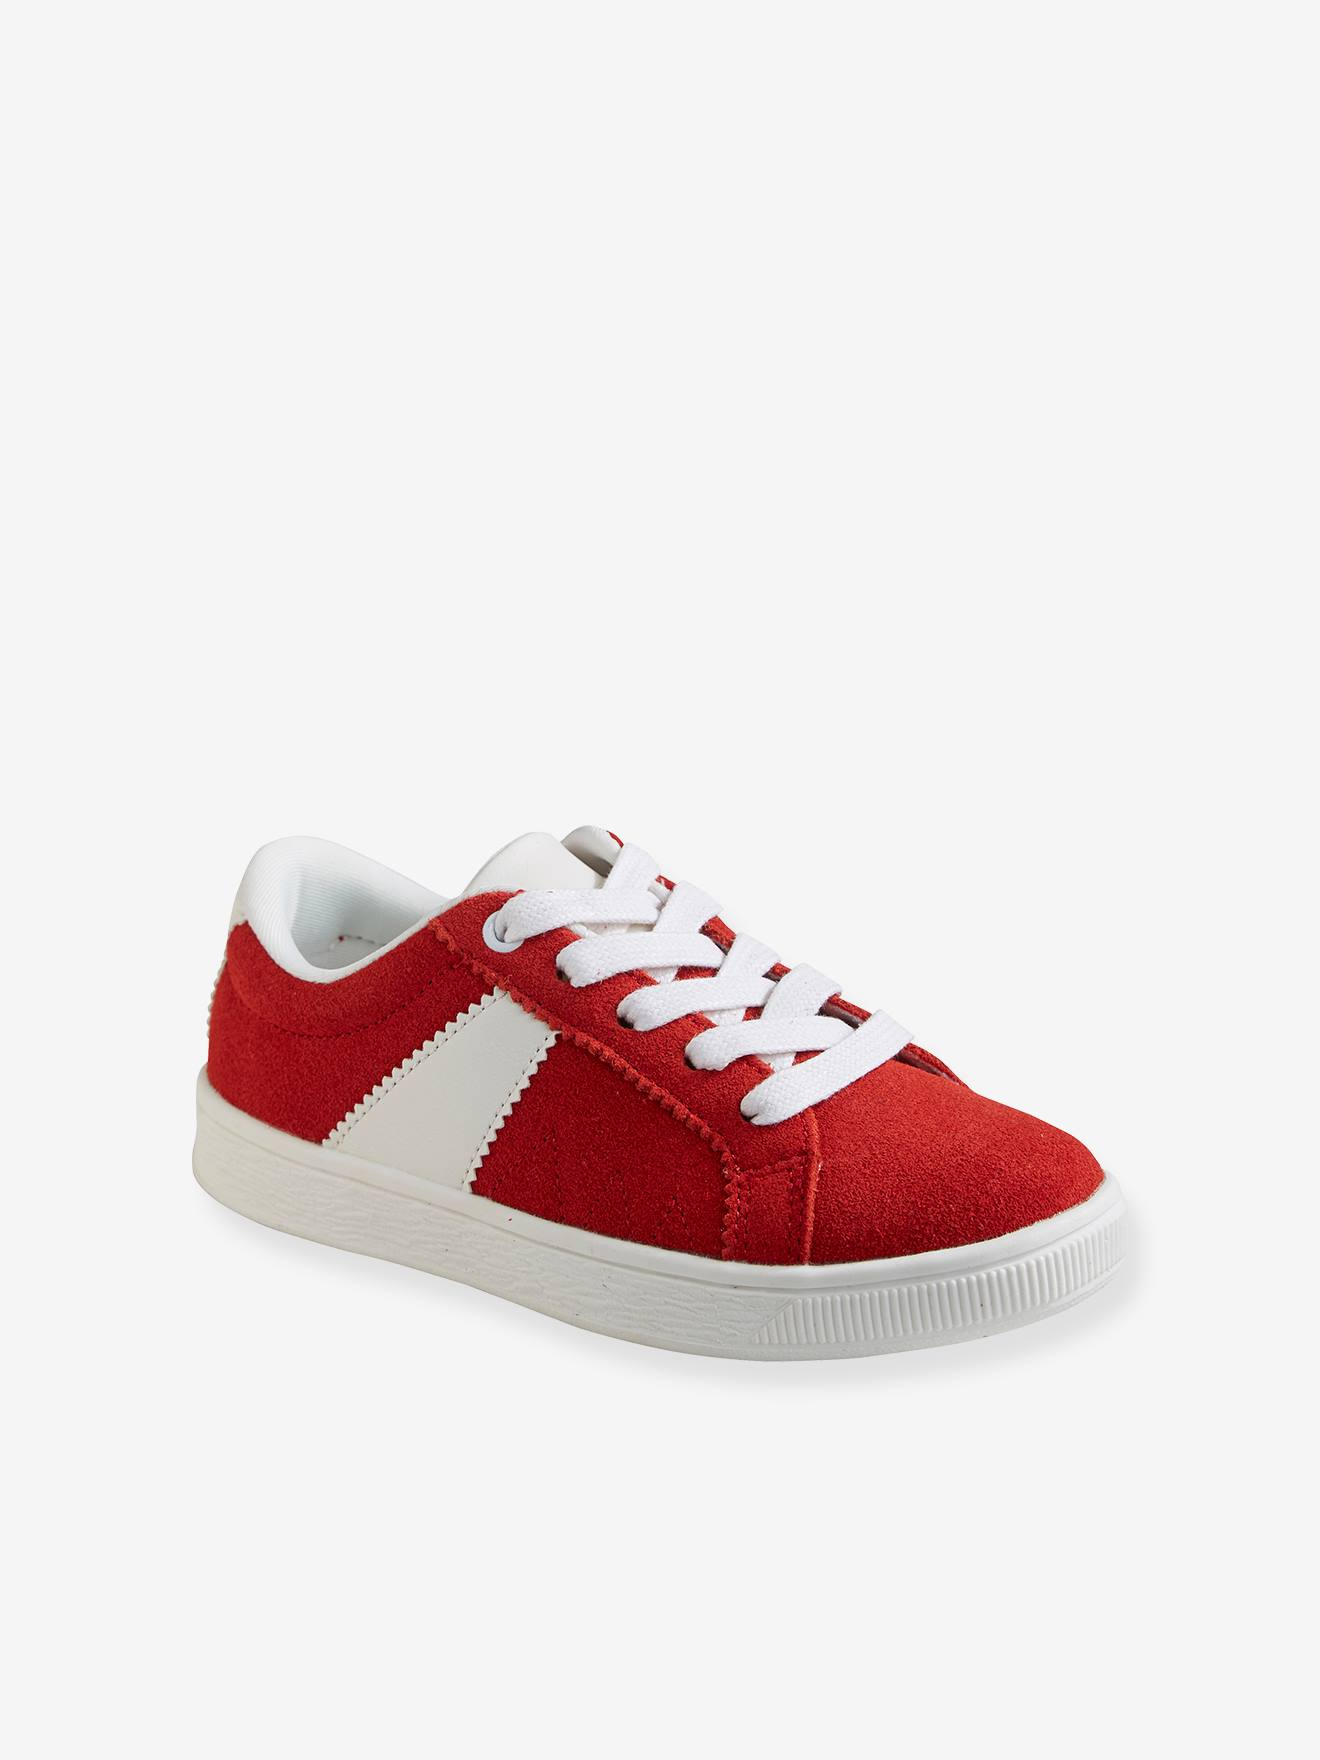 Split Leather Trainers for Boys - red